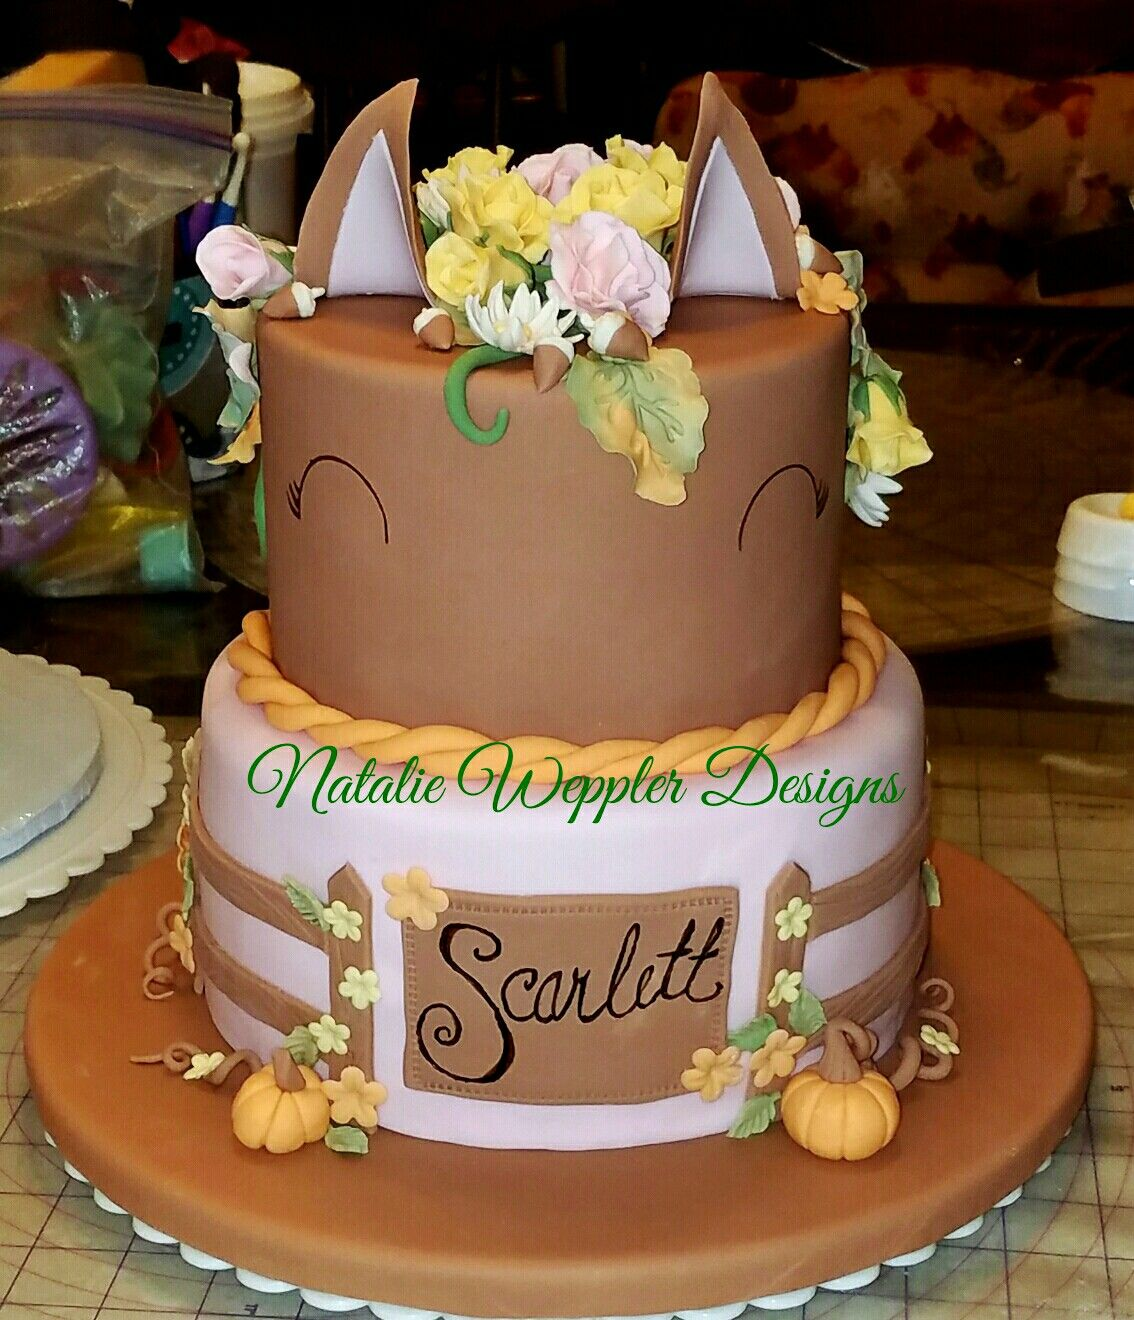 This horse riding barnyard themed birthday cake has a pastel fall